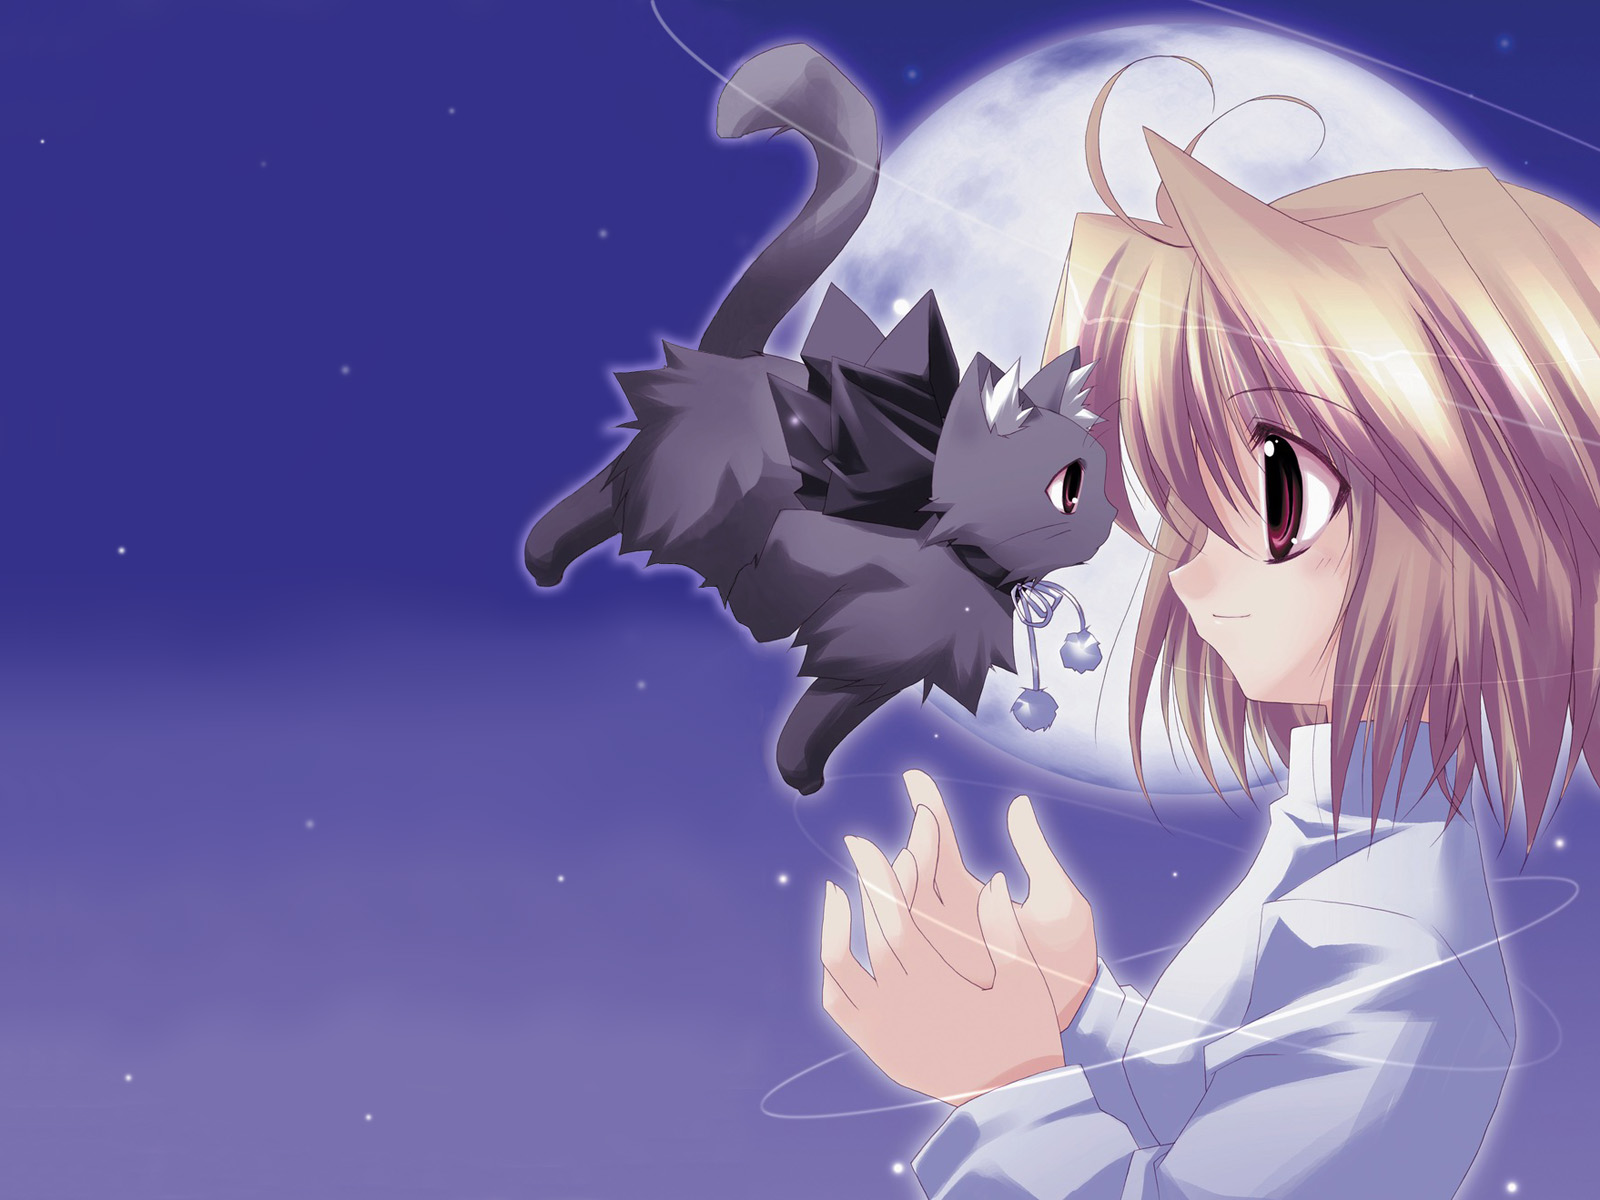 Cute anime animals wallpaper wallpapersafari - Cute anime girl pictures ...